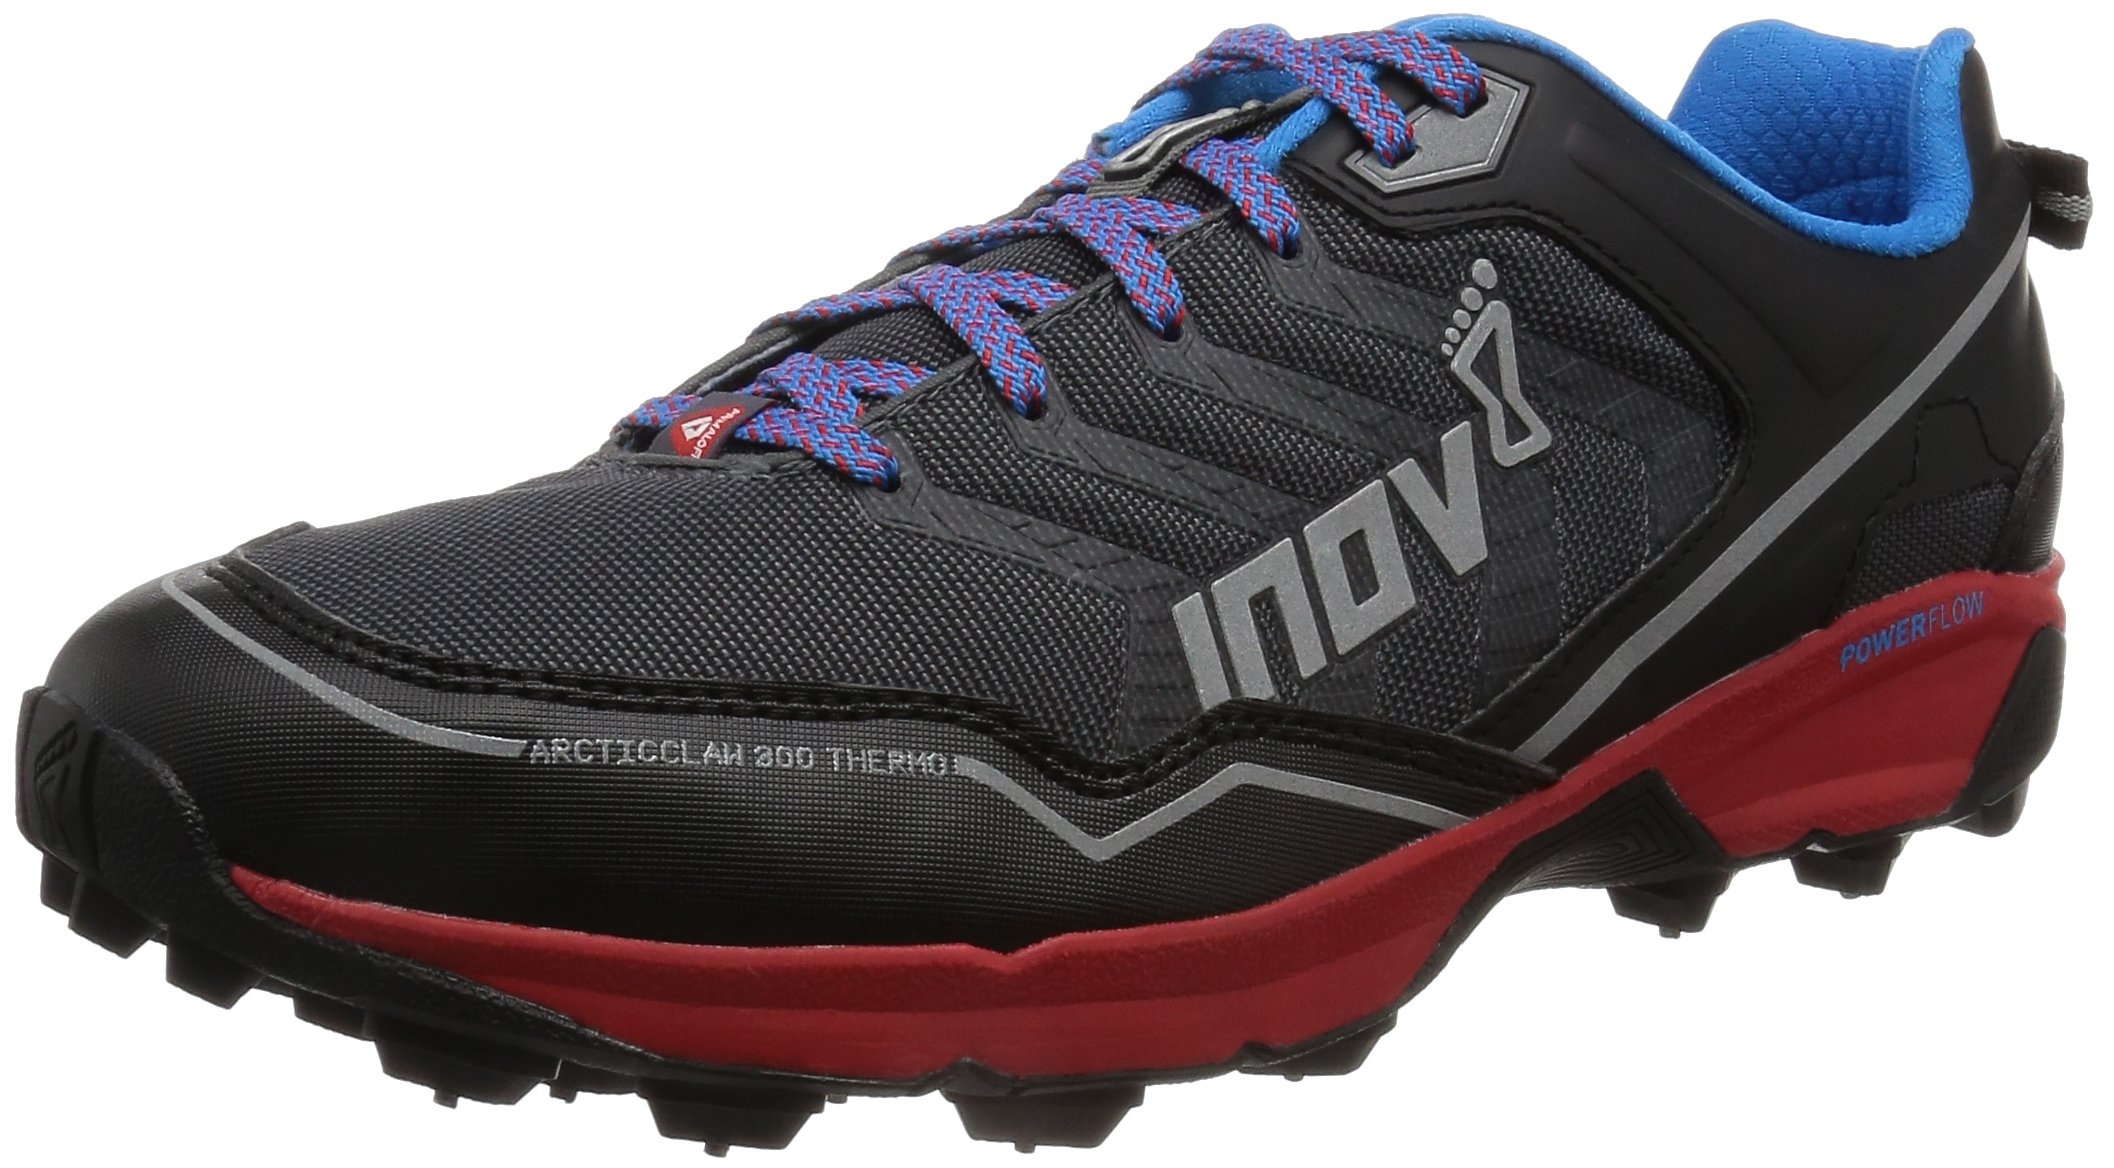 Inov-8 Arctic Claw™ 300 Thermo-U Trail Runner, Grey/Red/Blue, 7.5 M US